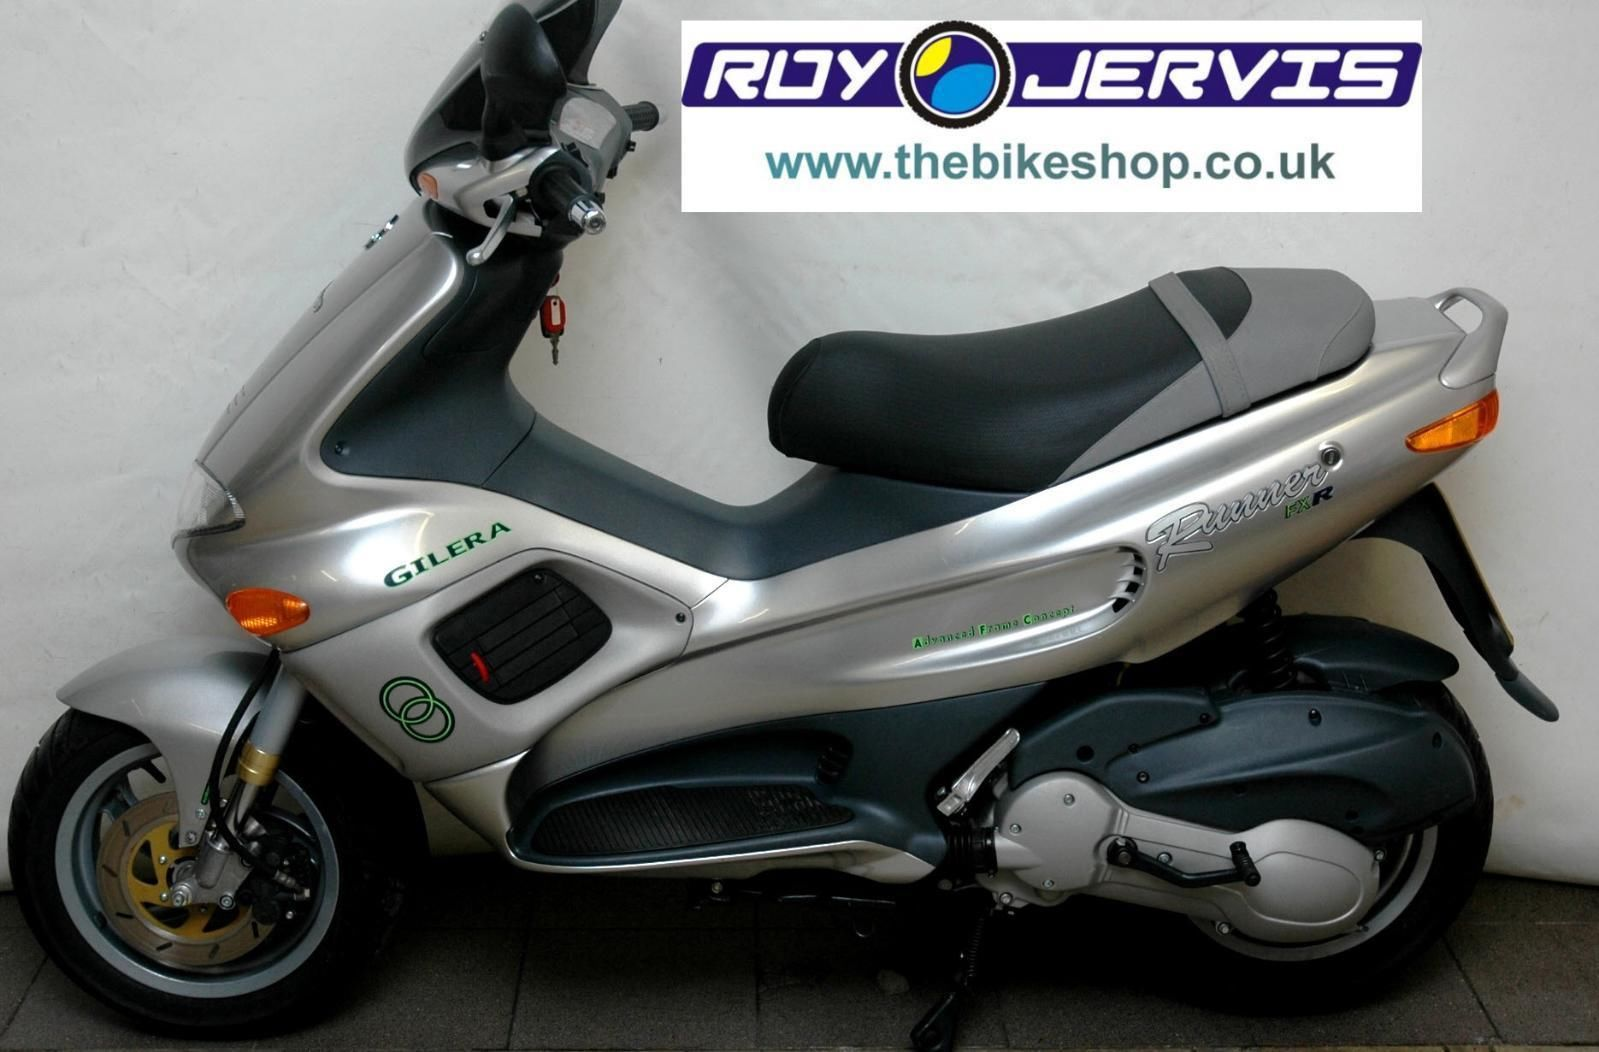 1999 t gilera runner 180 fxr 180cc scooter grey only 434. Black Bedroom Furniture Sets. Home Design Ideas